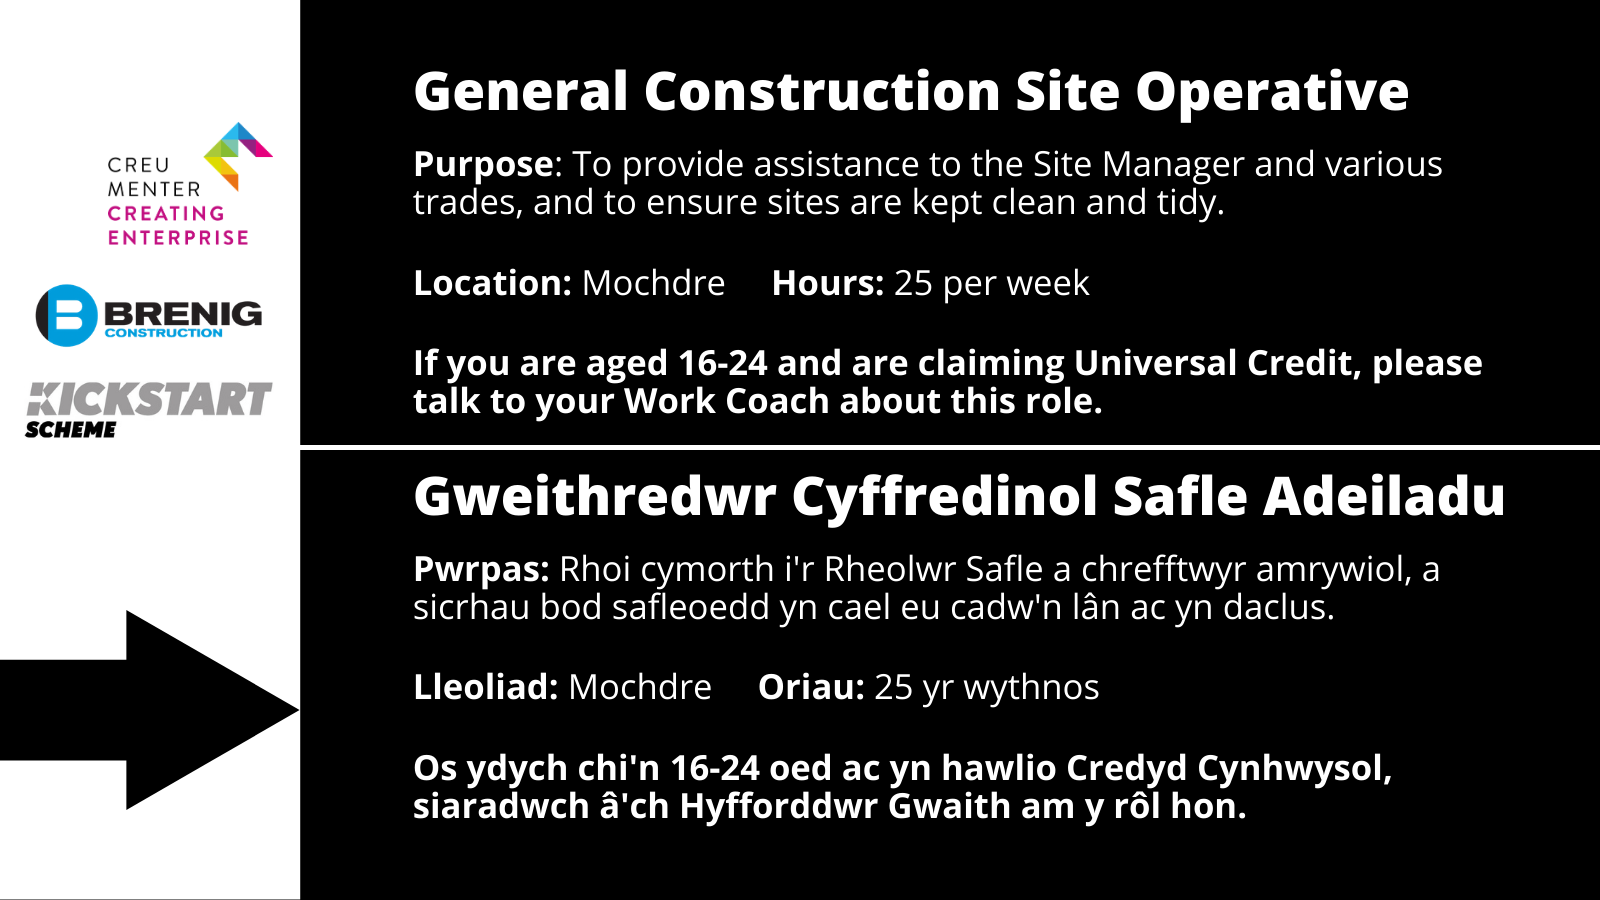 General Construction Site Operative